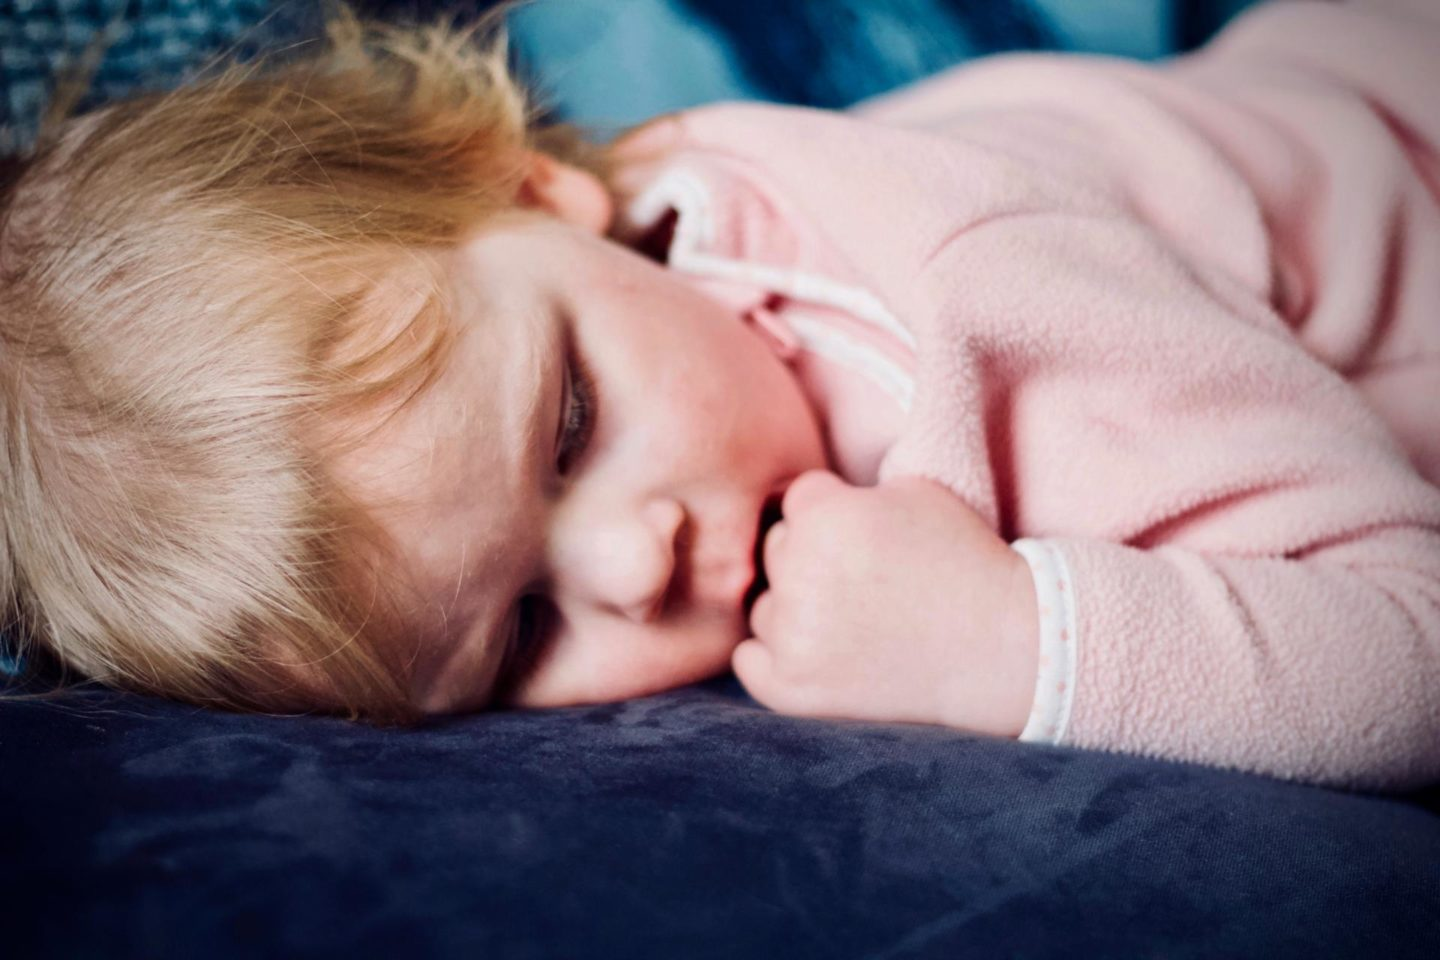 5 tips for looking after an unwell child